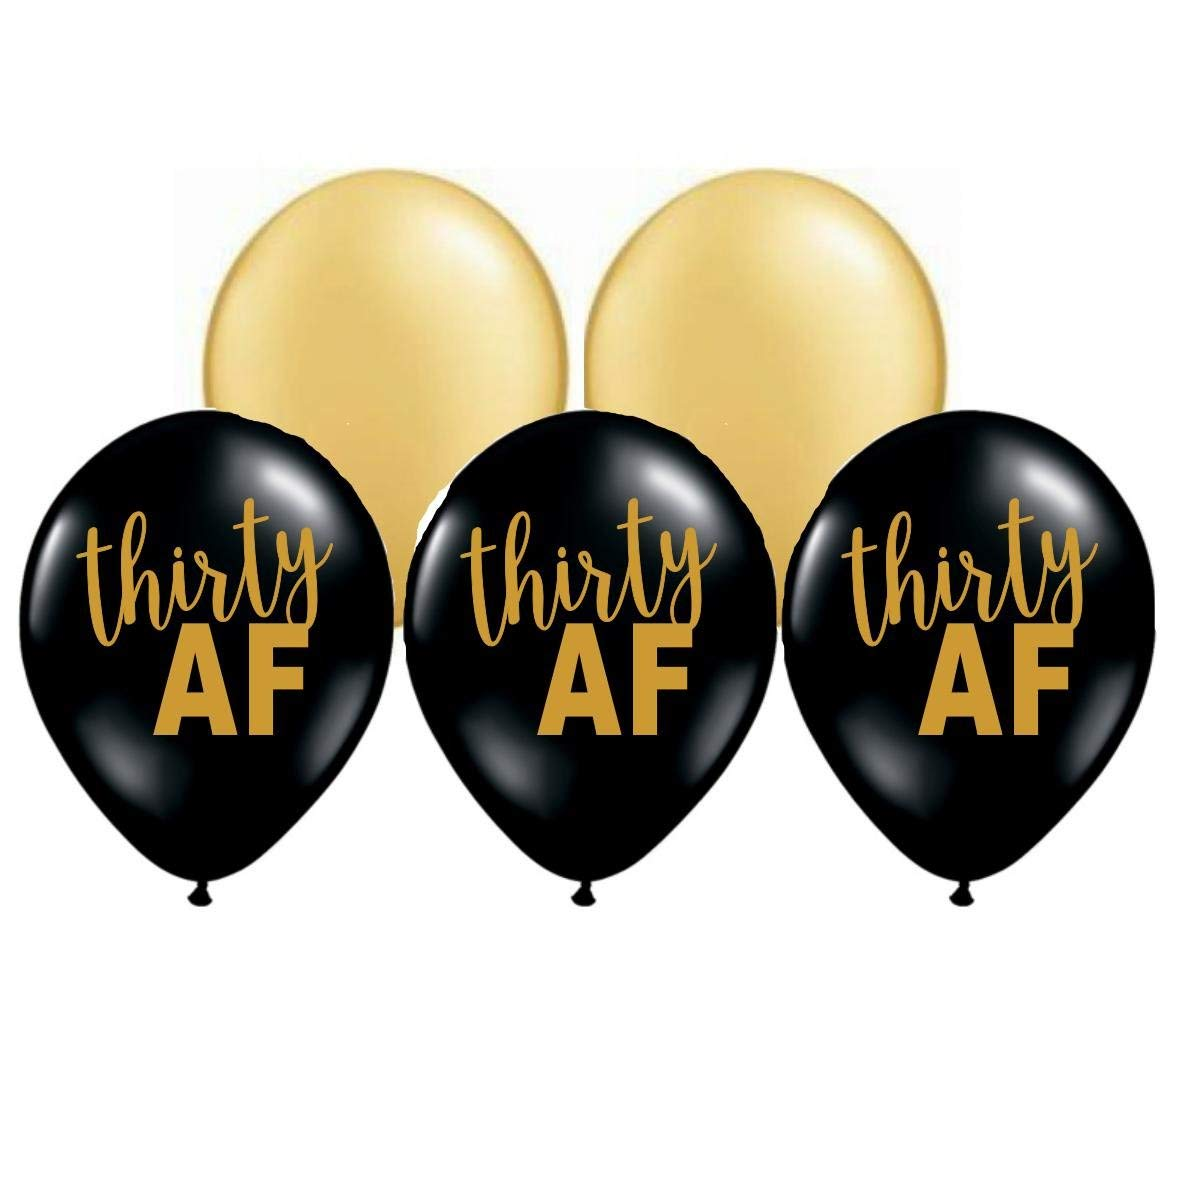 Buy Thirty Af Balloons 30th Party Decorations 30th Birthday Balloons 30th Birthday Party Balloons 30 Af Balloons Gold And Black 30th Birthday Party Decor Set Of 5 In Cheap Price On Alibaba Com